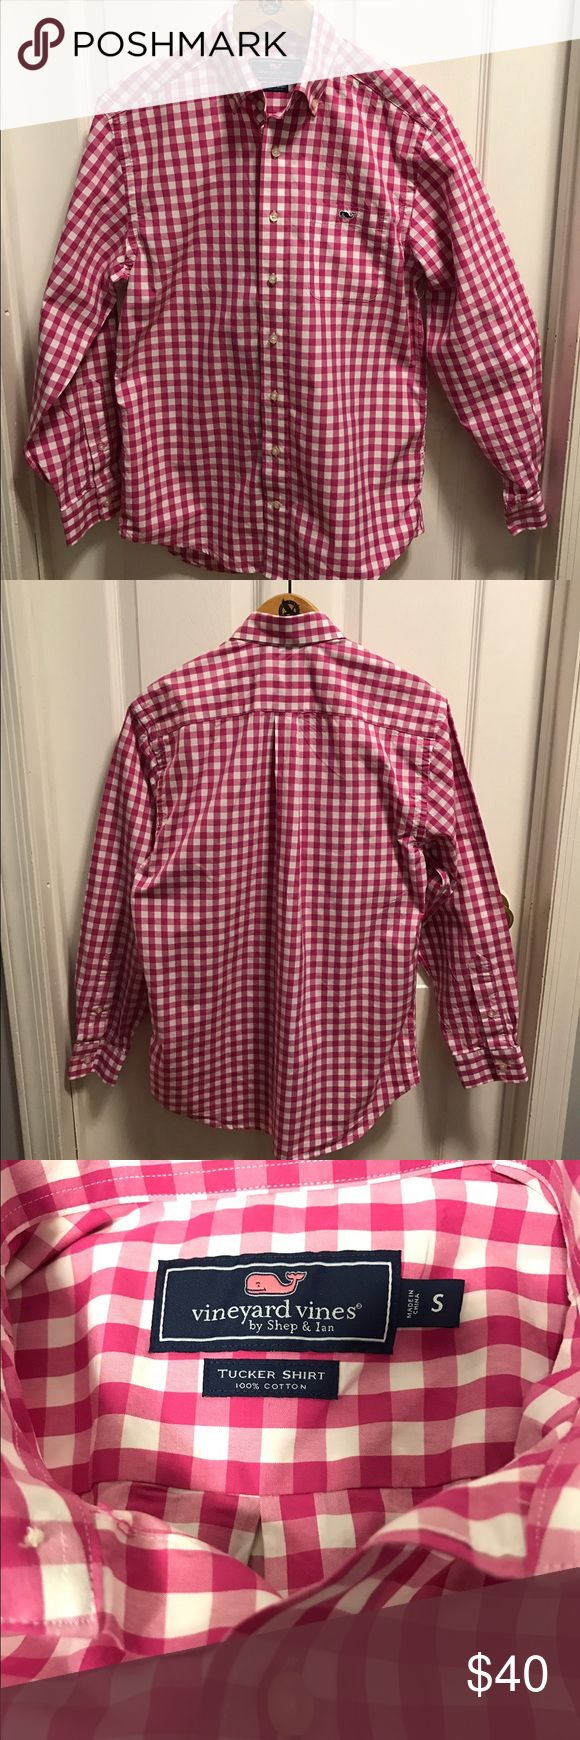 Selling this Vineyard vines Tucker shirt, checkered, size Small on Poshmark! My username is: itsmebg. #shopmycloset #poshmark #fashion #shopping #style #forsale #Vineyard Vines #Other